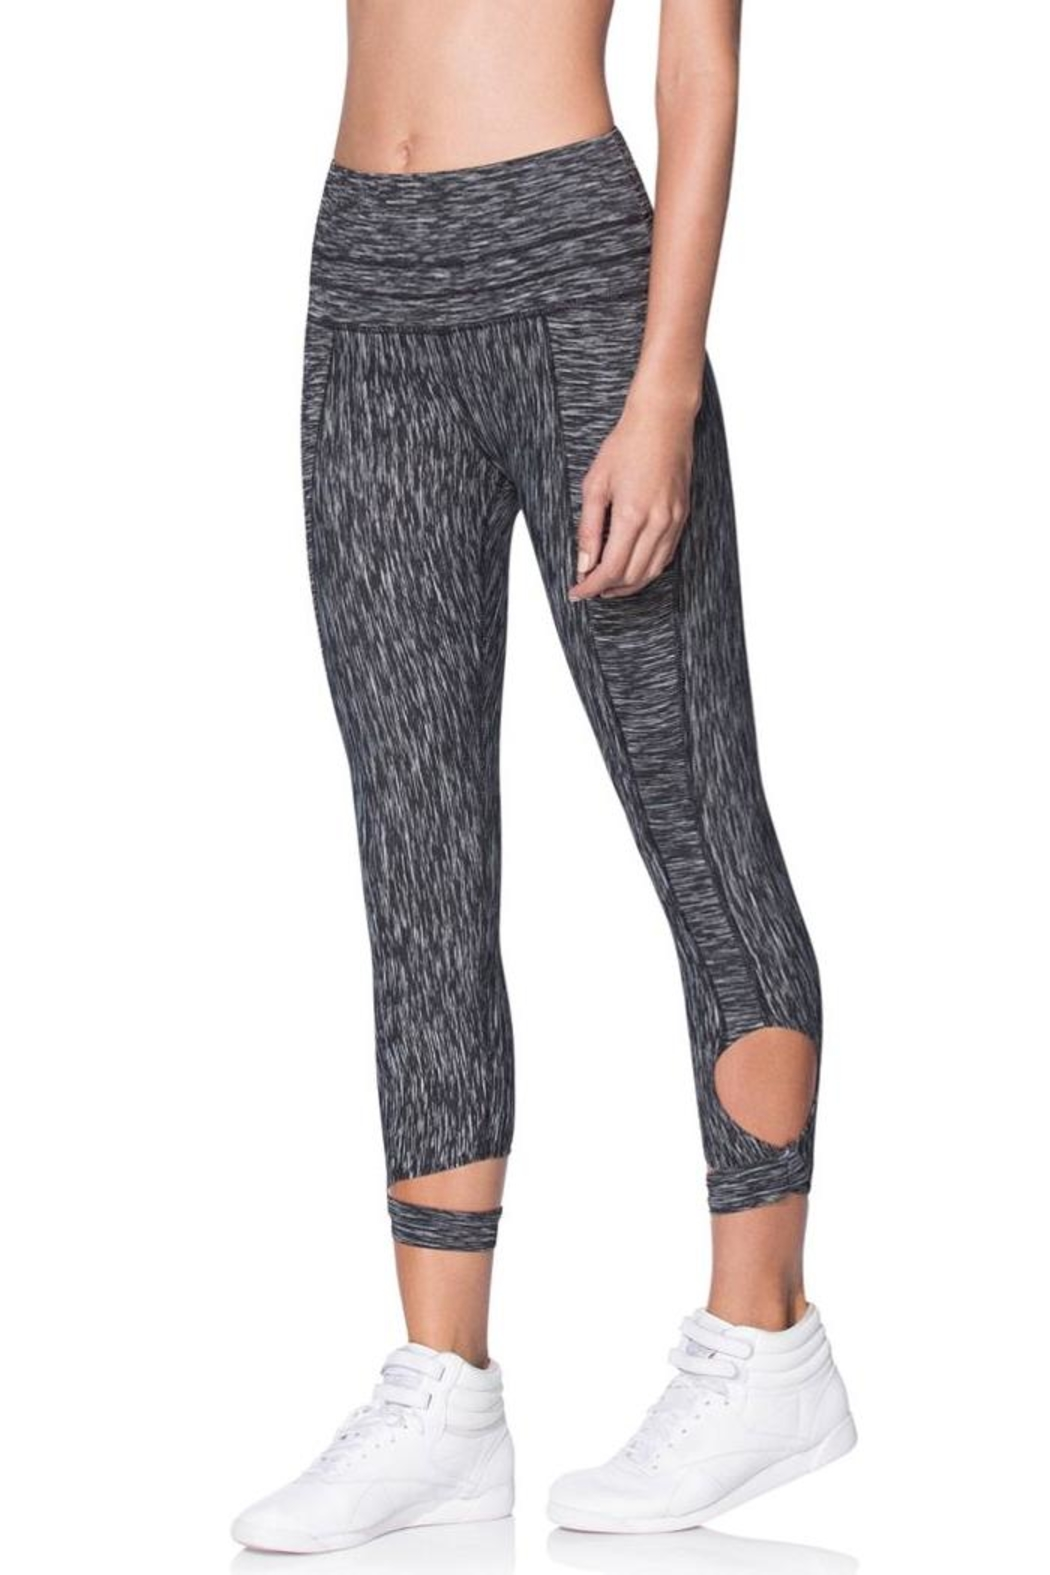 Maaji Wrap Capri Leggings - Side Cropped Image